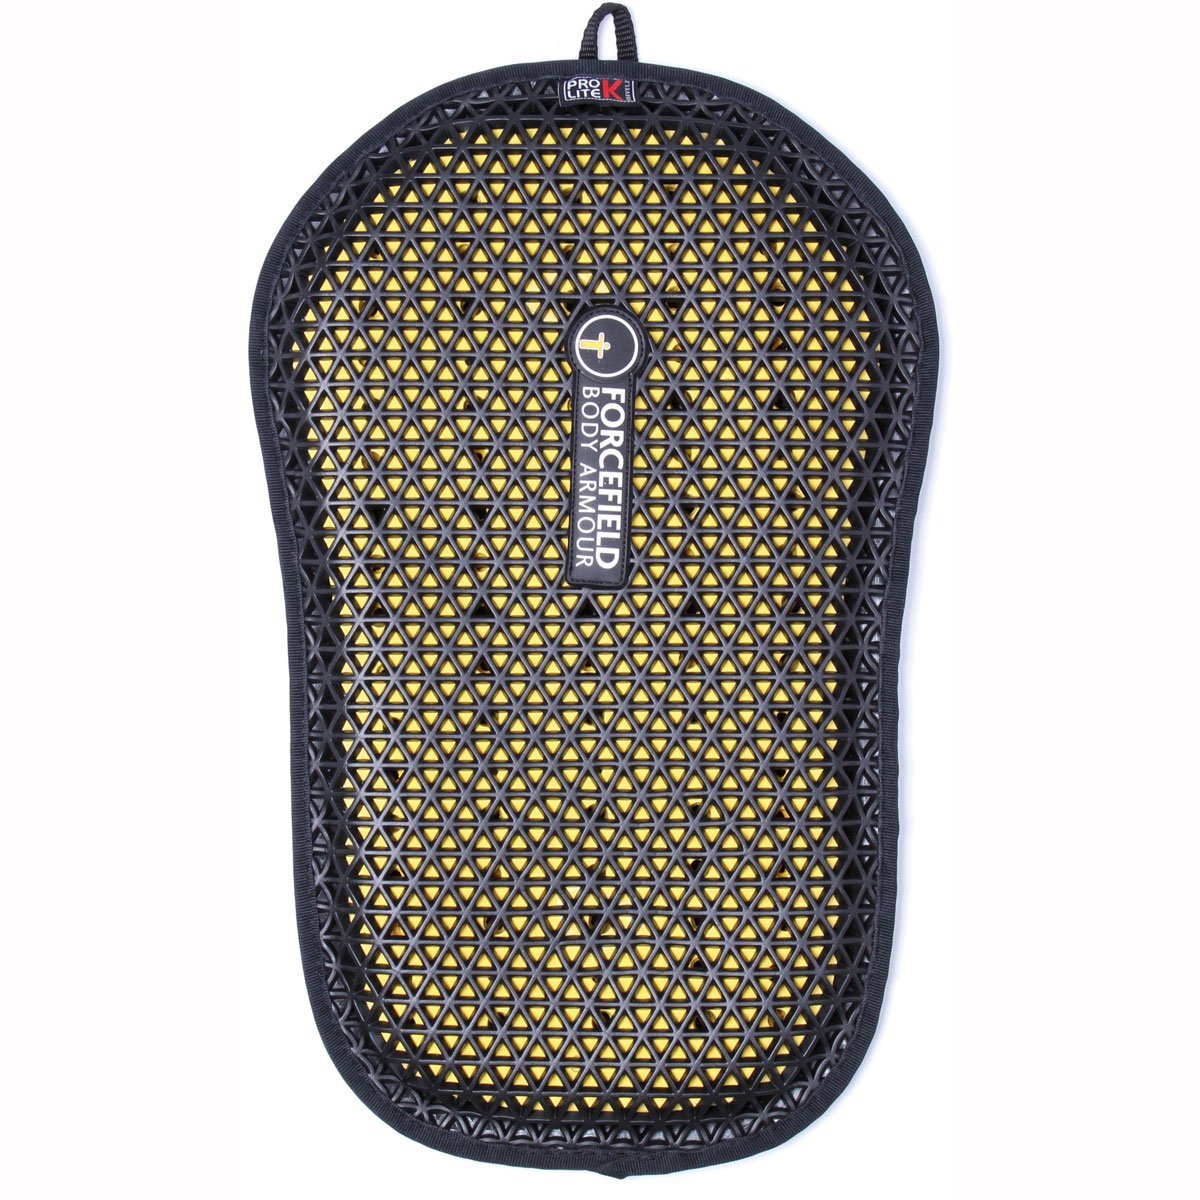 Forcefield Body Armour Pro Lite K Back Insert (BLACK/YELLOW) by Forcefield Body Armour (Image #1)